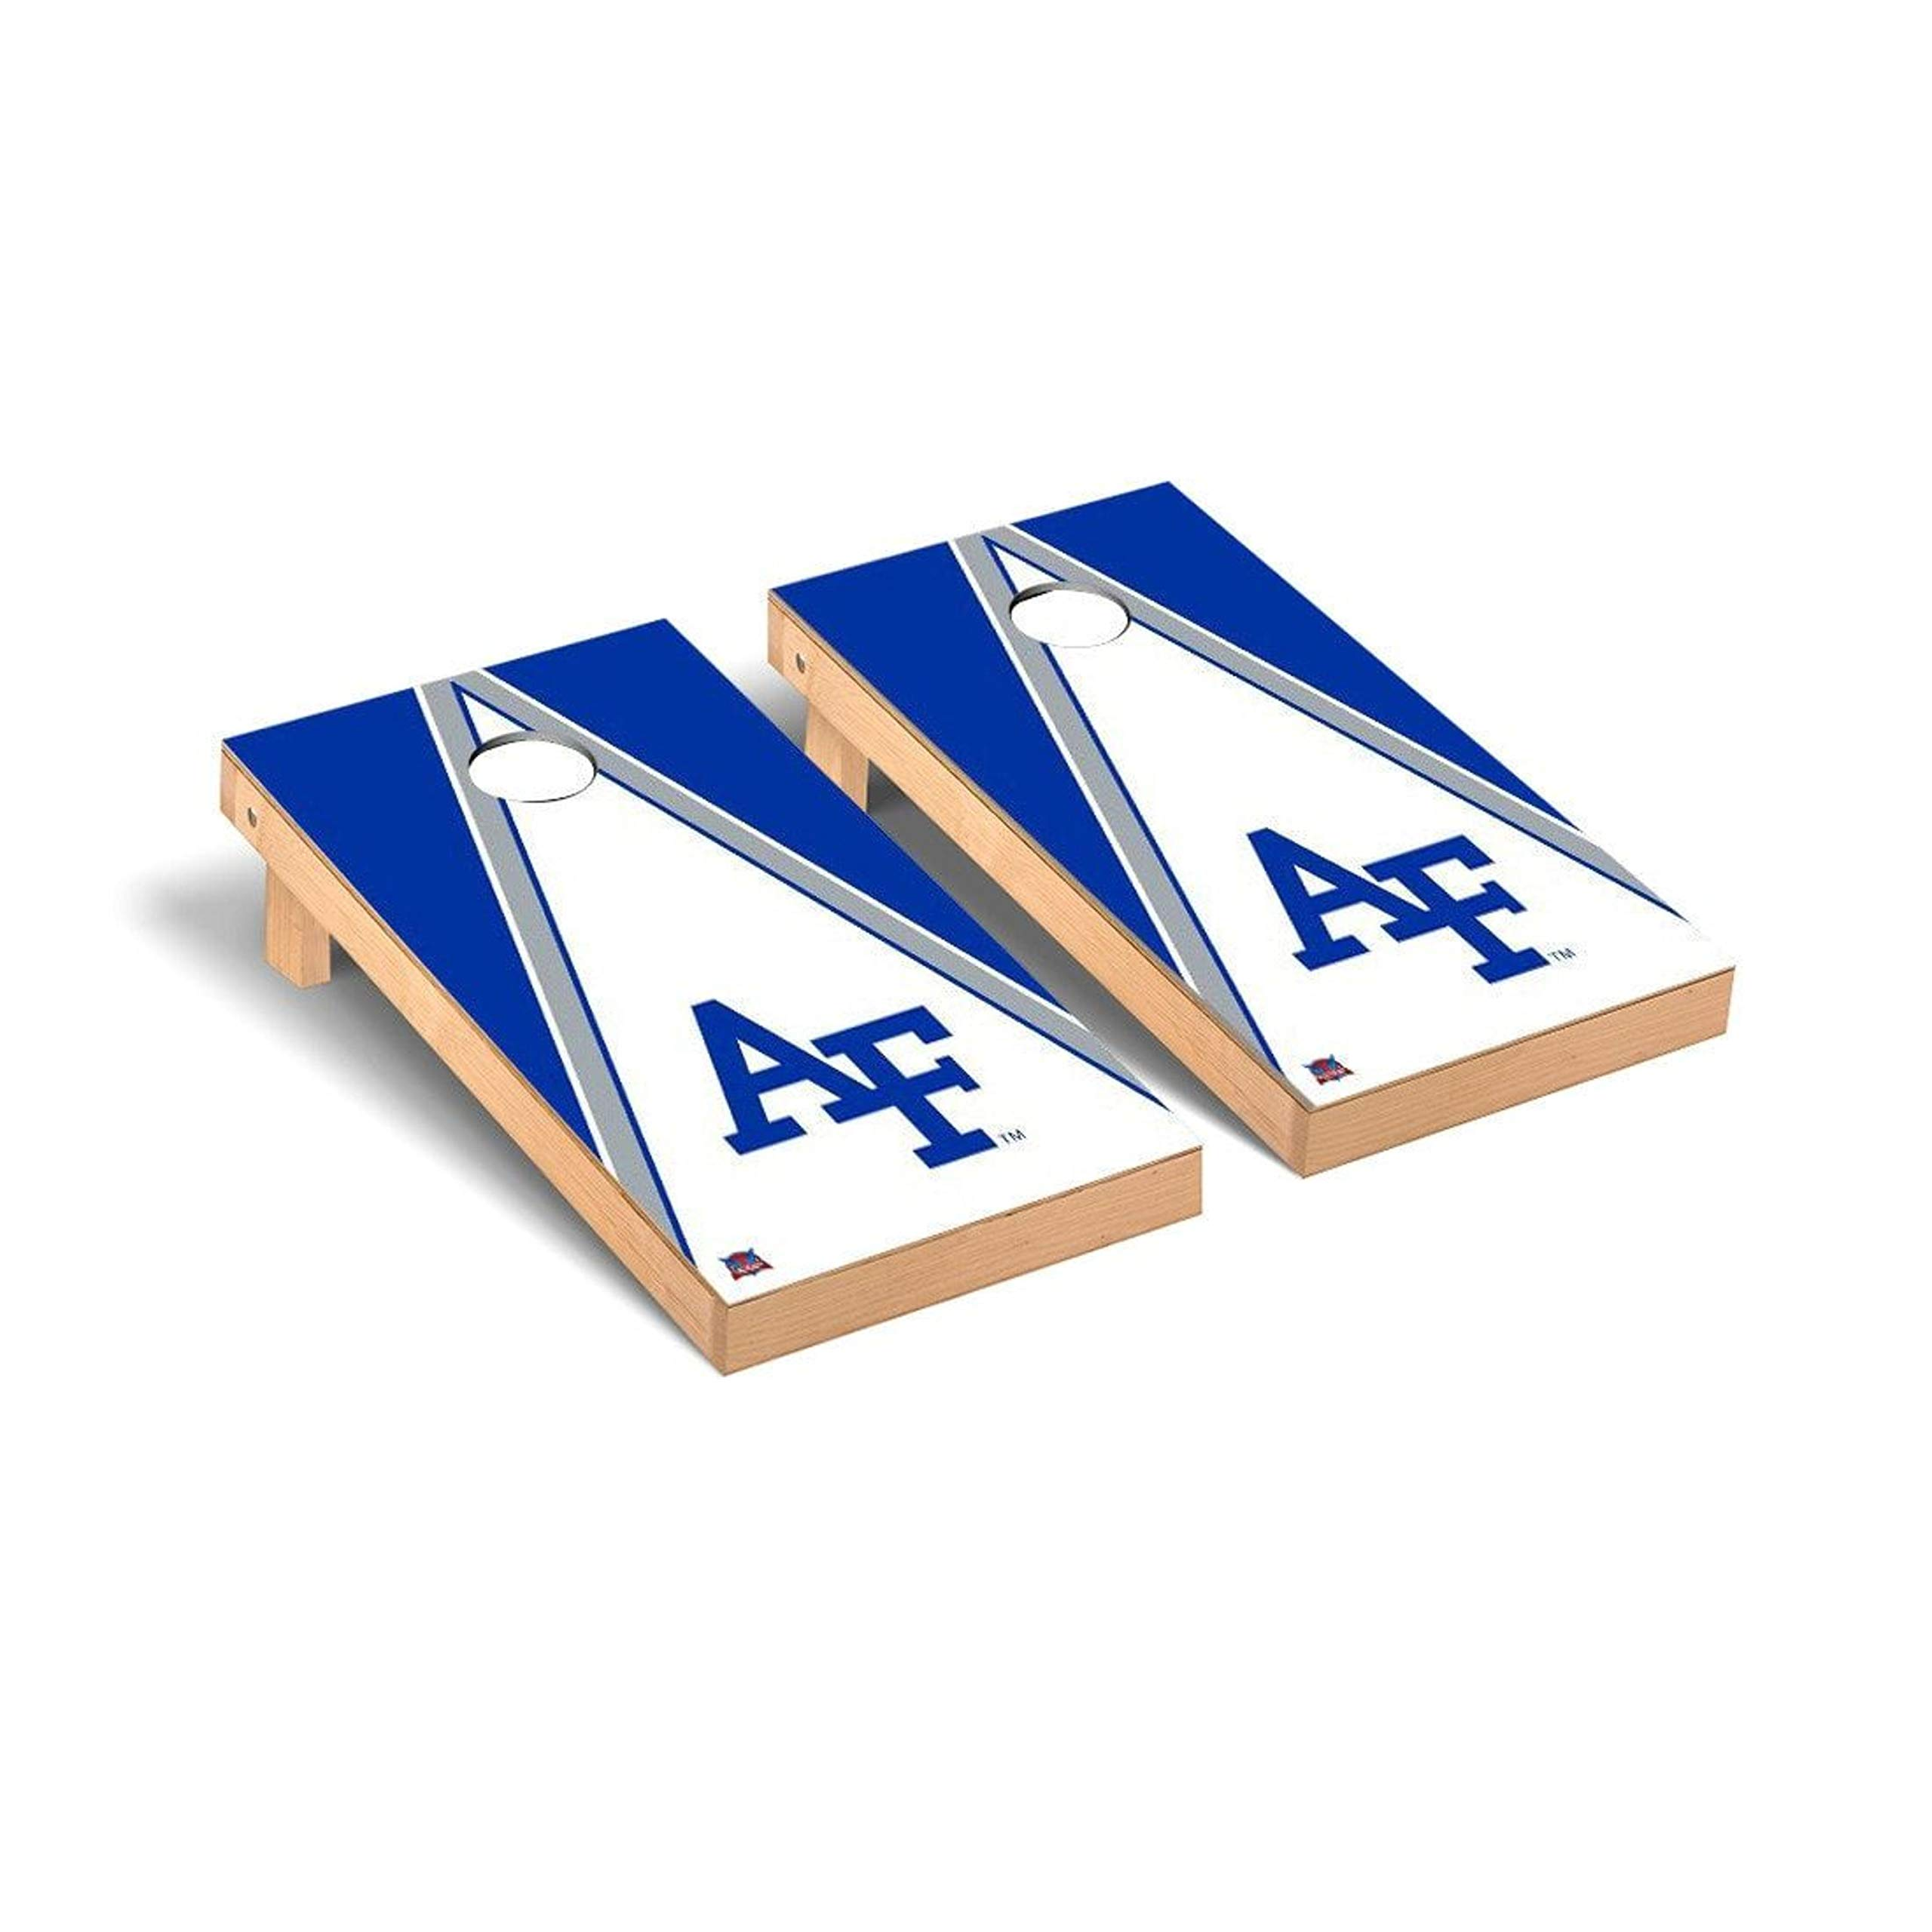 Victory Tailgate Regulation Collegiate NCAA Triangle Series Cornhole Board Set - 2 Boards, 8 Bags - Air Force Academy Falcons